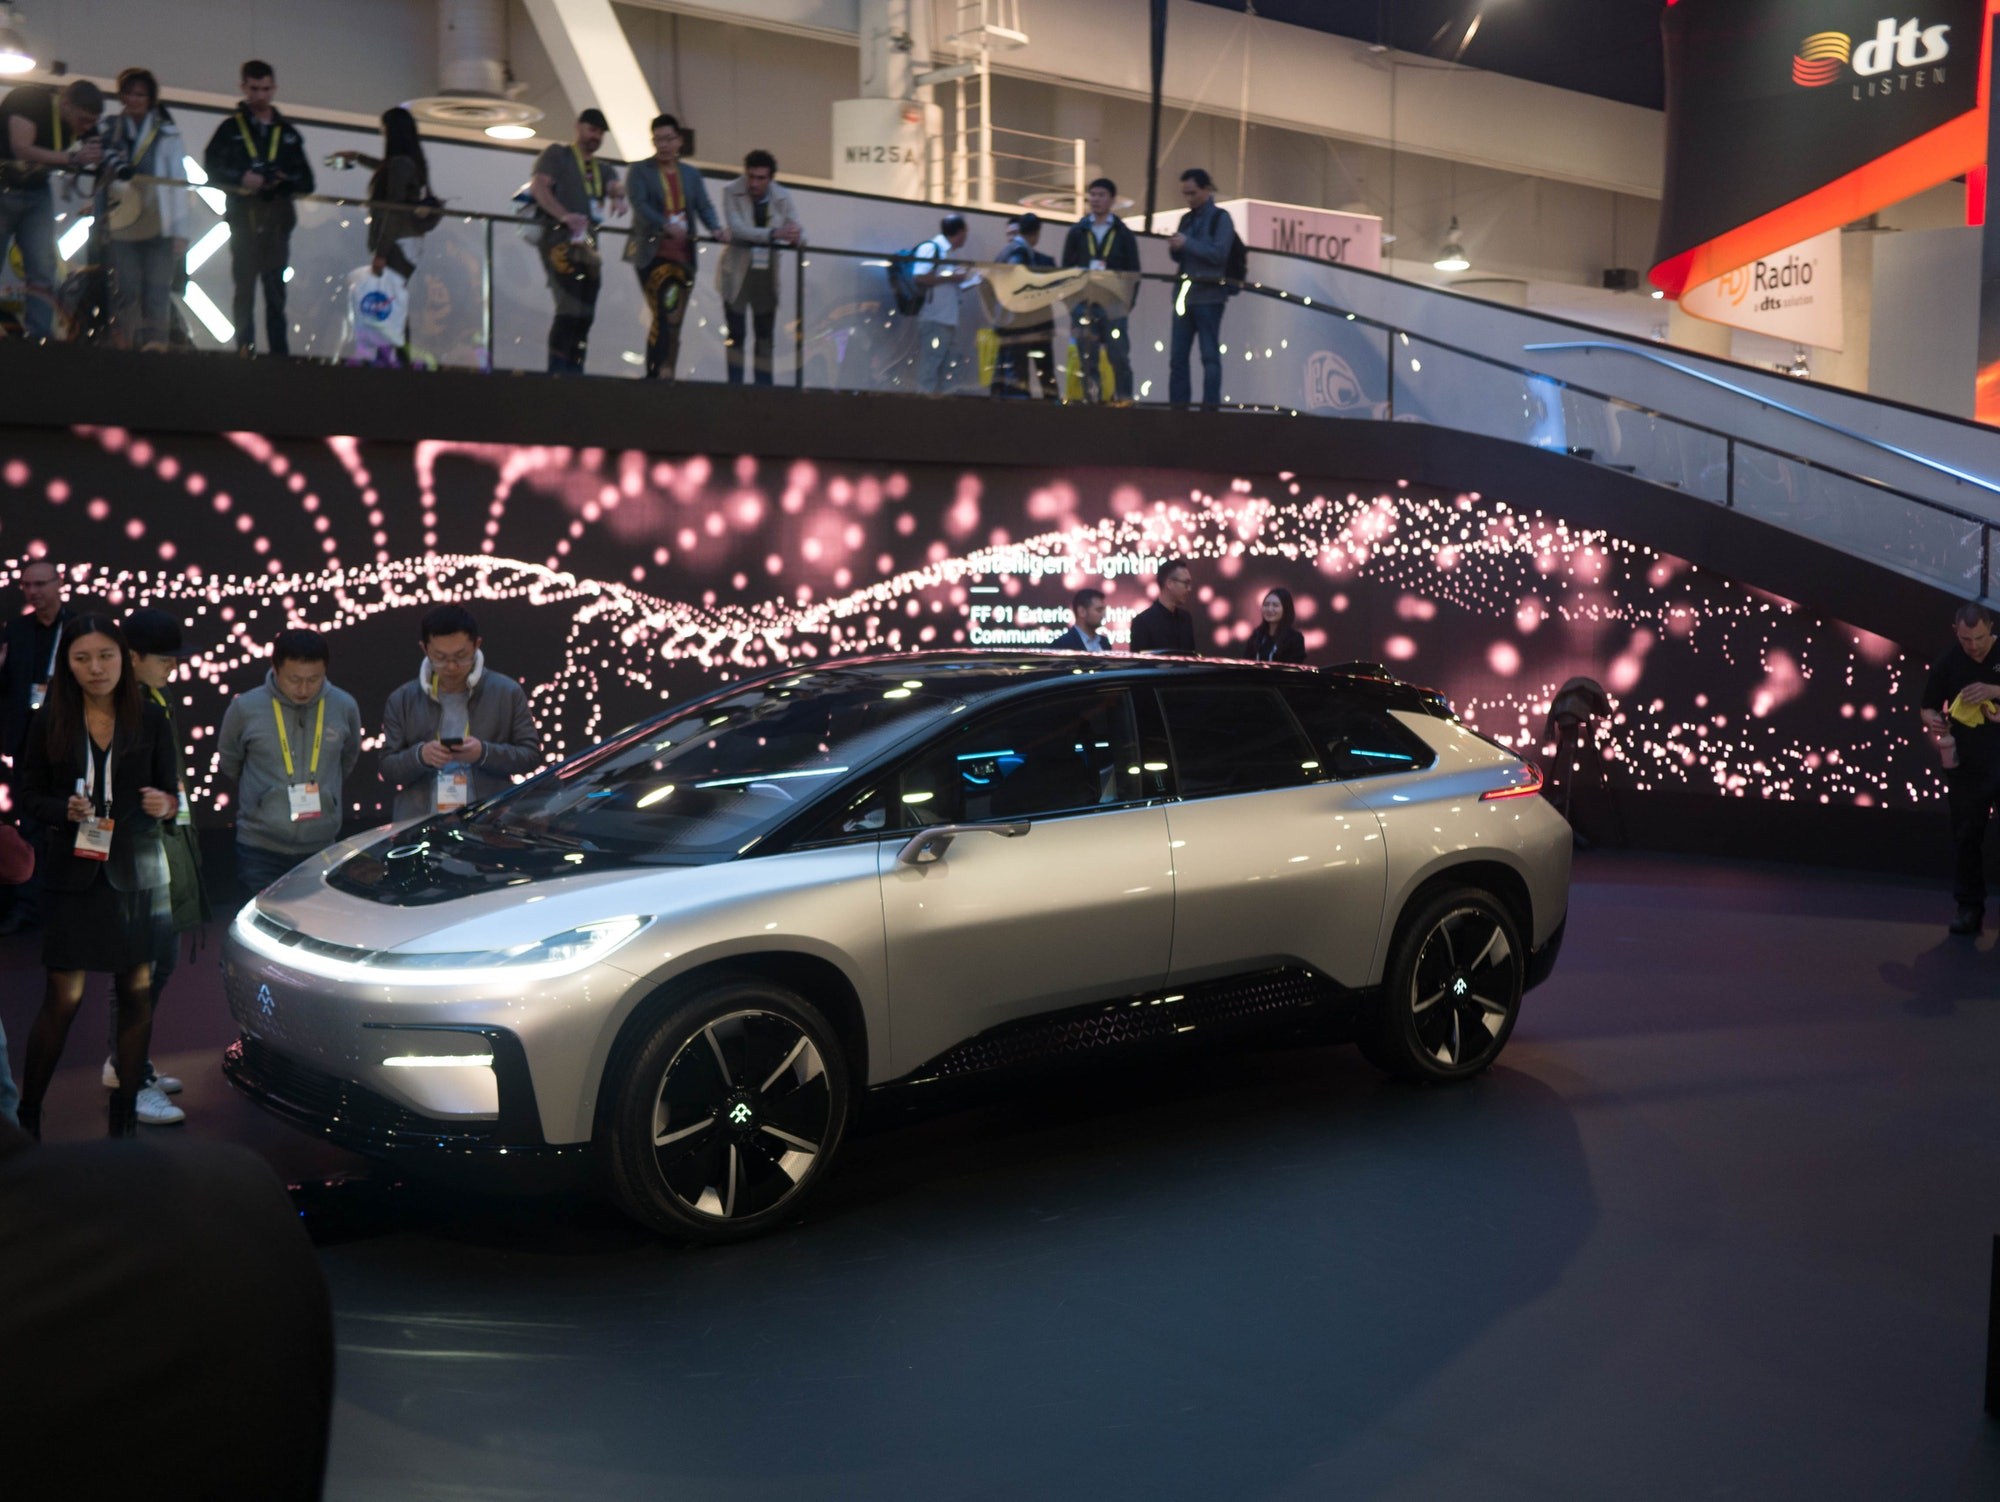 Faraday future car